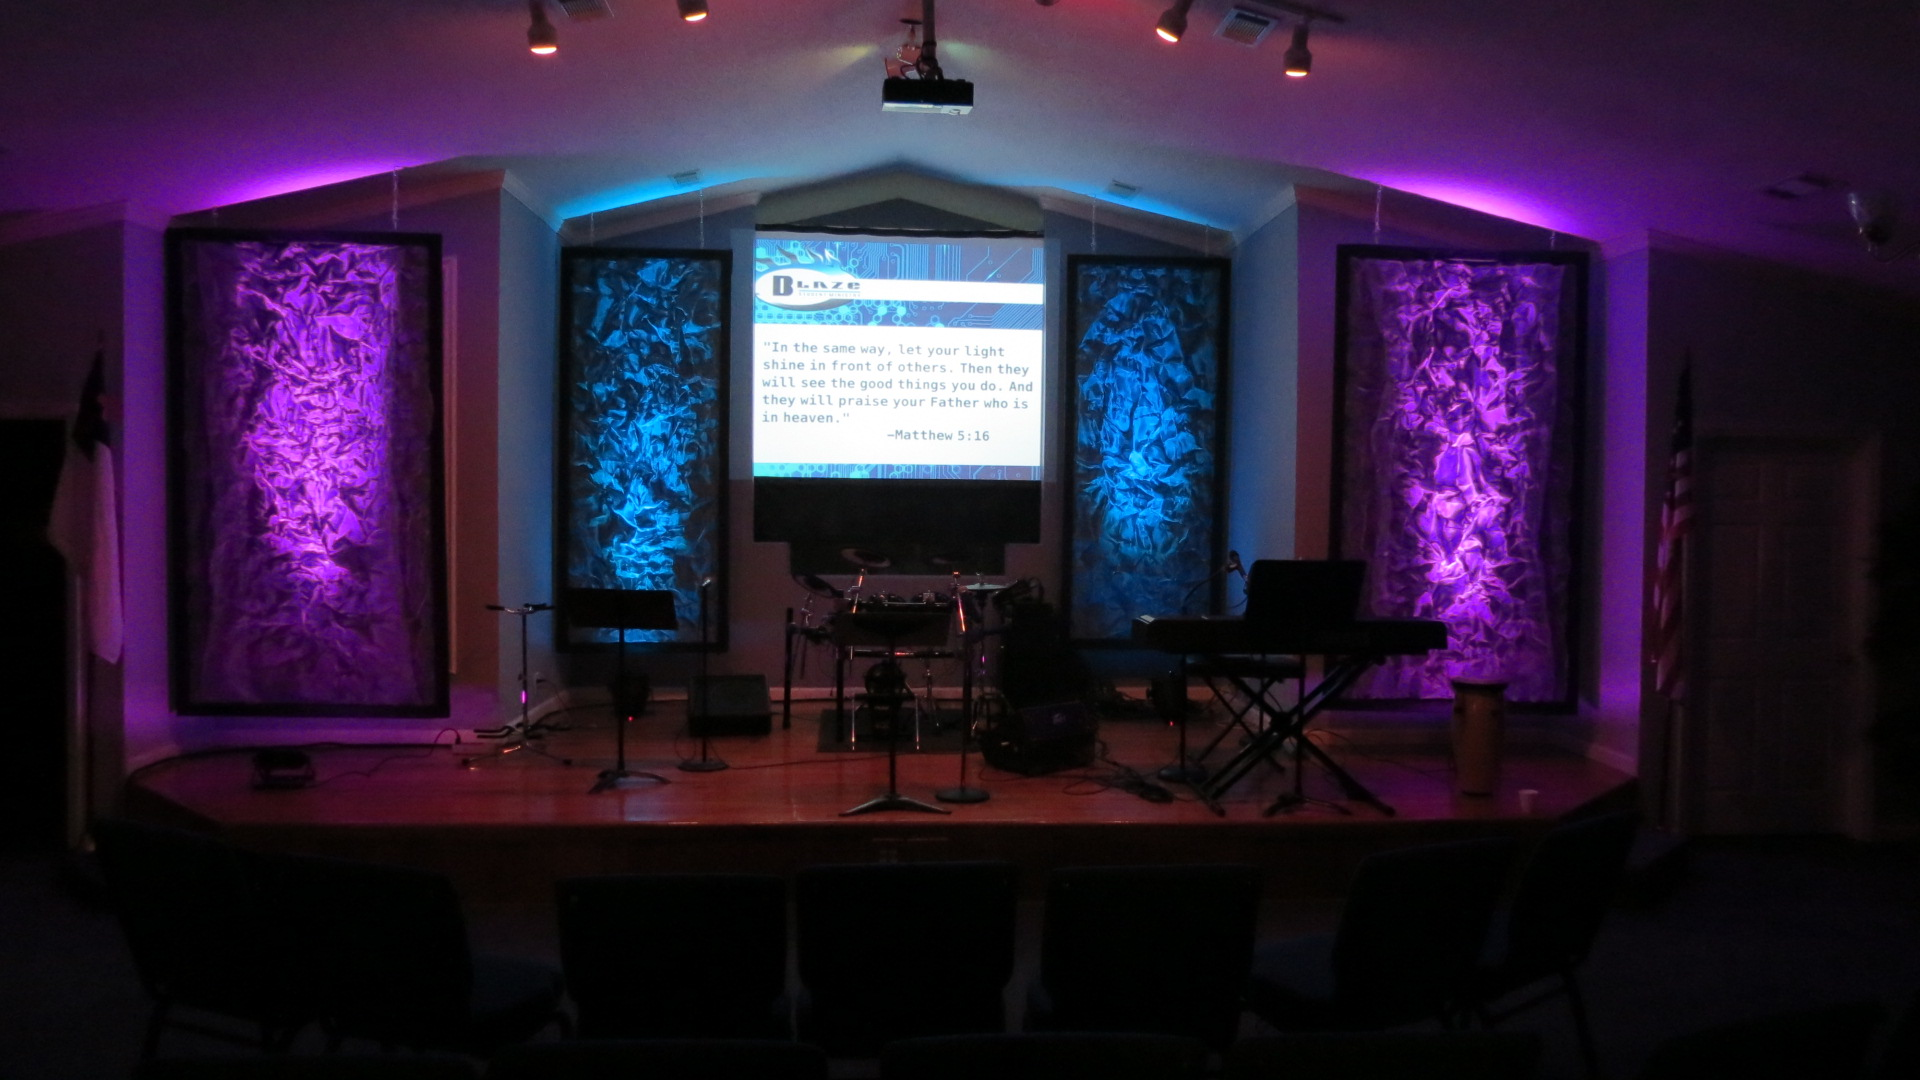 Removable Texture Church Stage Design Ideas Scenic Sets And Stage Design Ideas From Churches Around The Globe